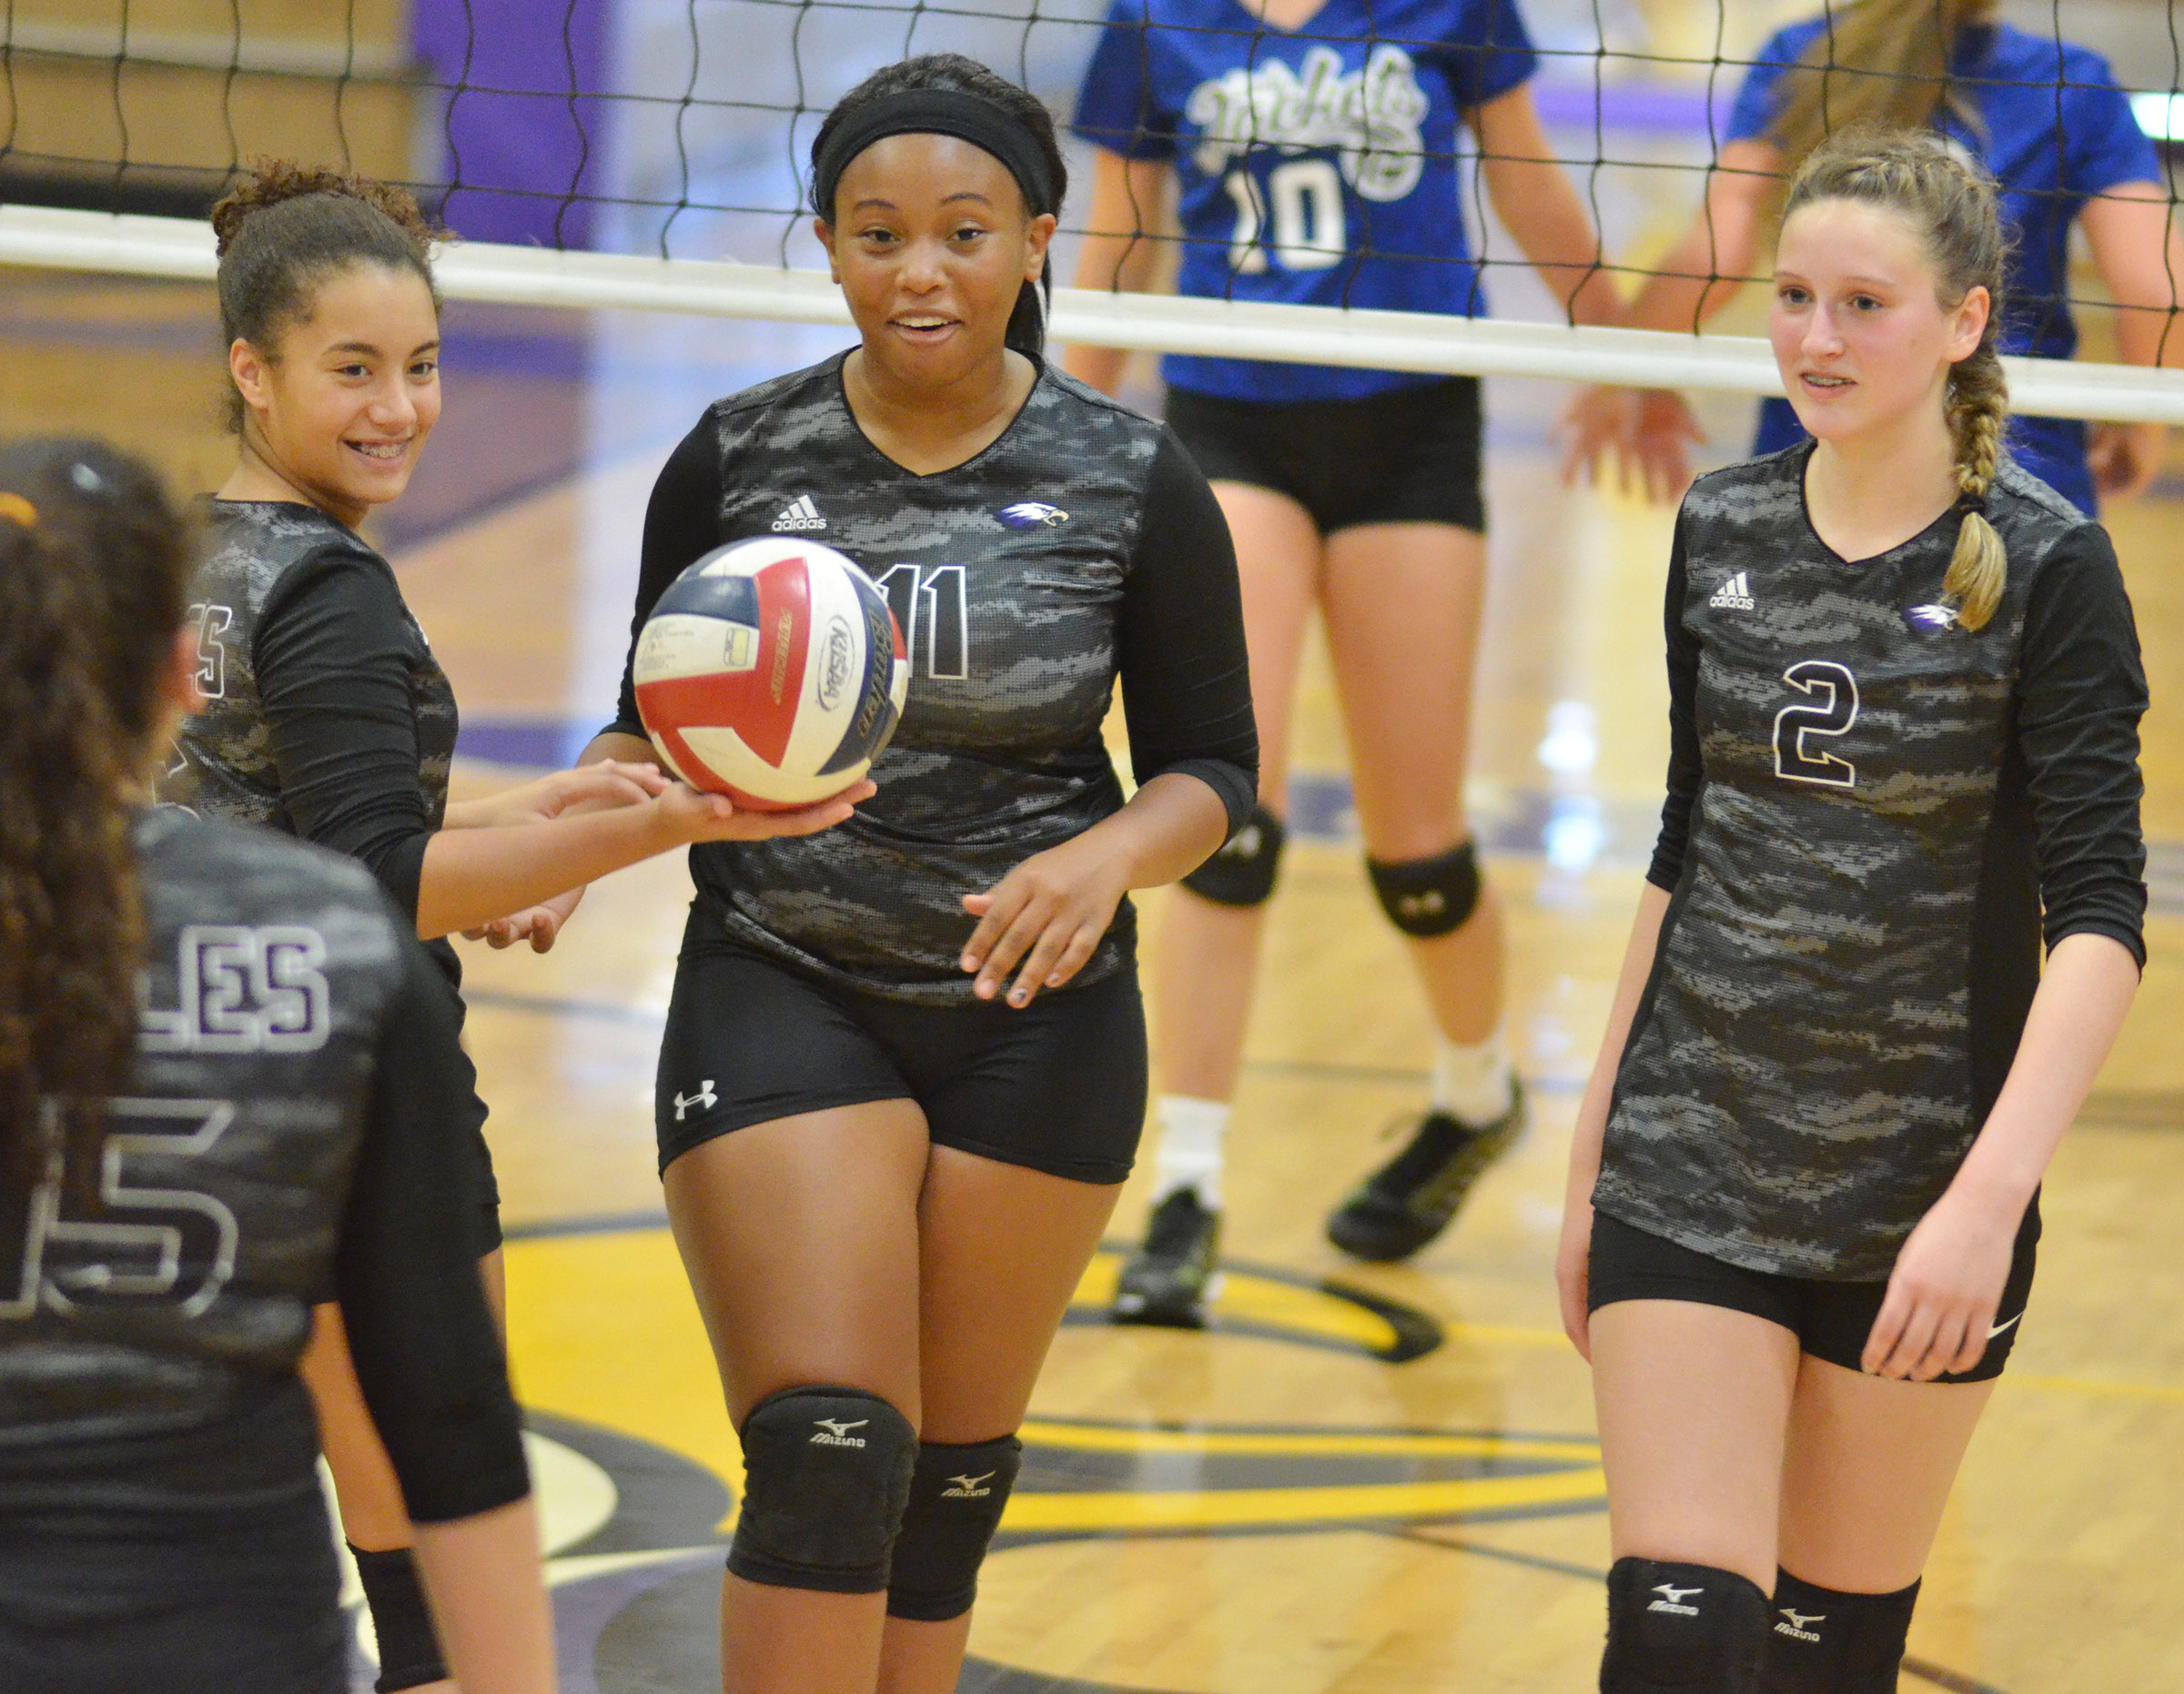 From left, CHS freshman Laci Hodges, sophomore Ketayah Taylor and freshman Zoie Sidebottom celebrate a point.